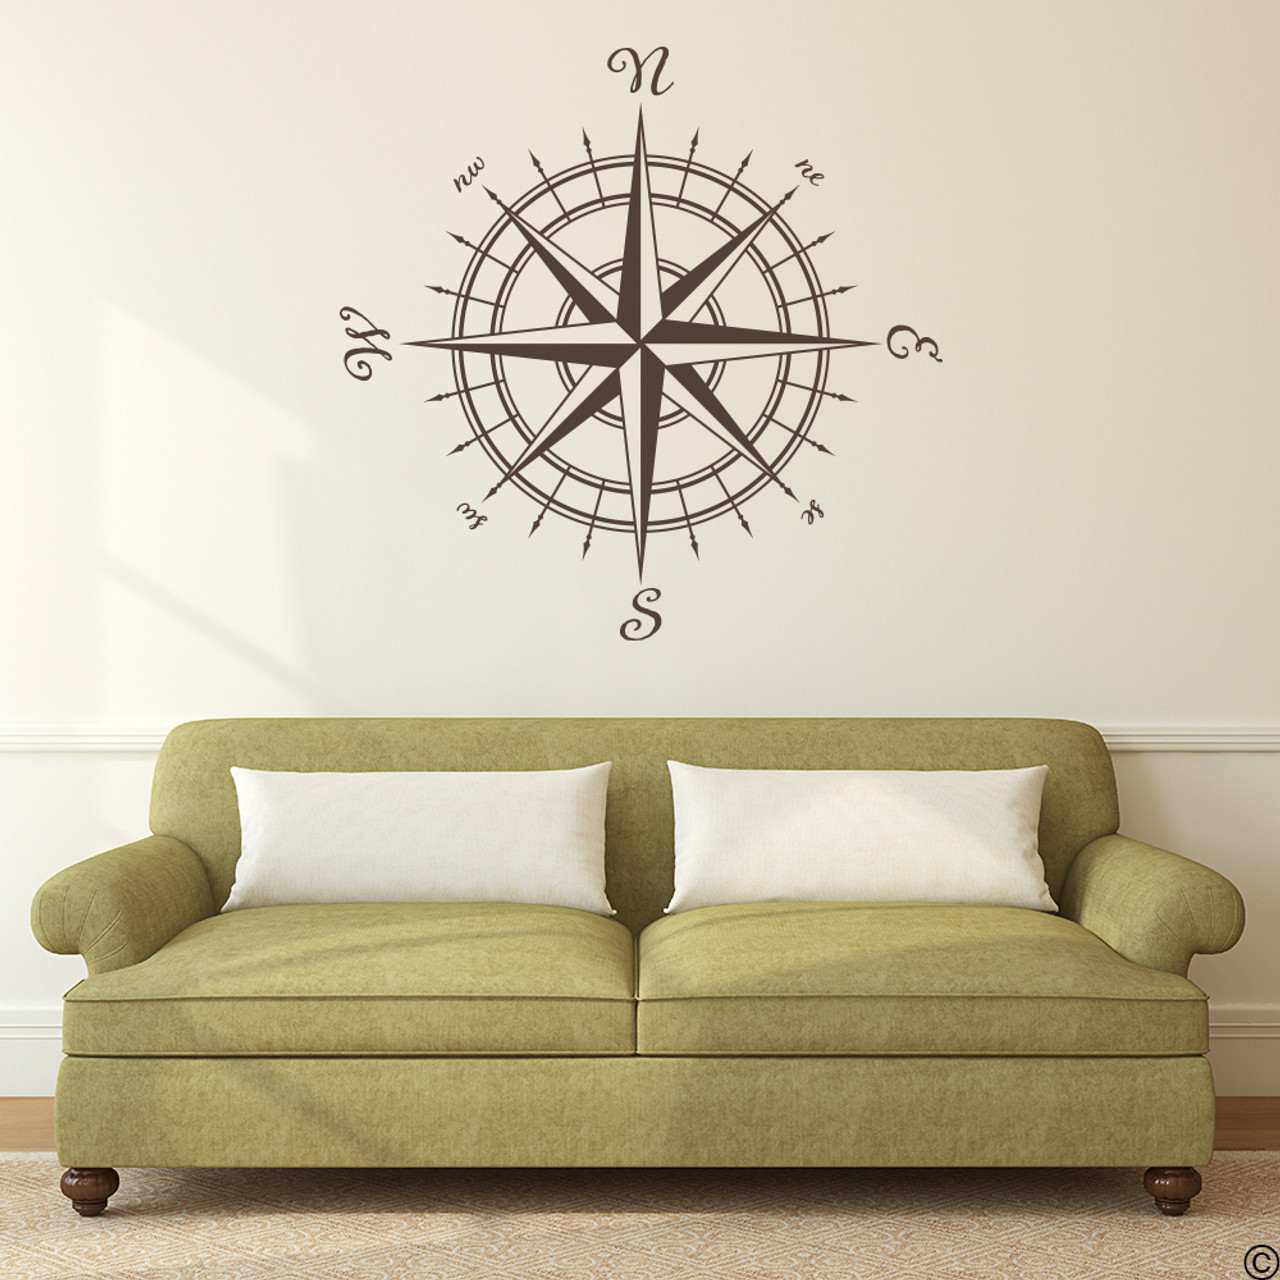 The Erasmus compass rose vinyl wall or ceiling decal in brown